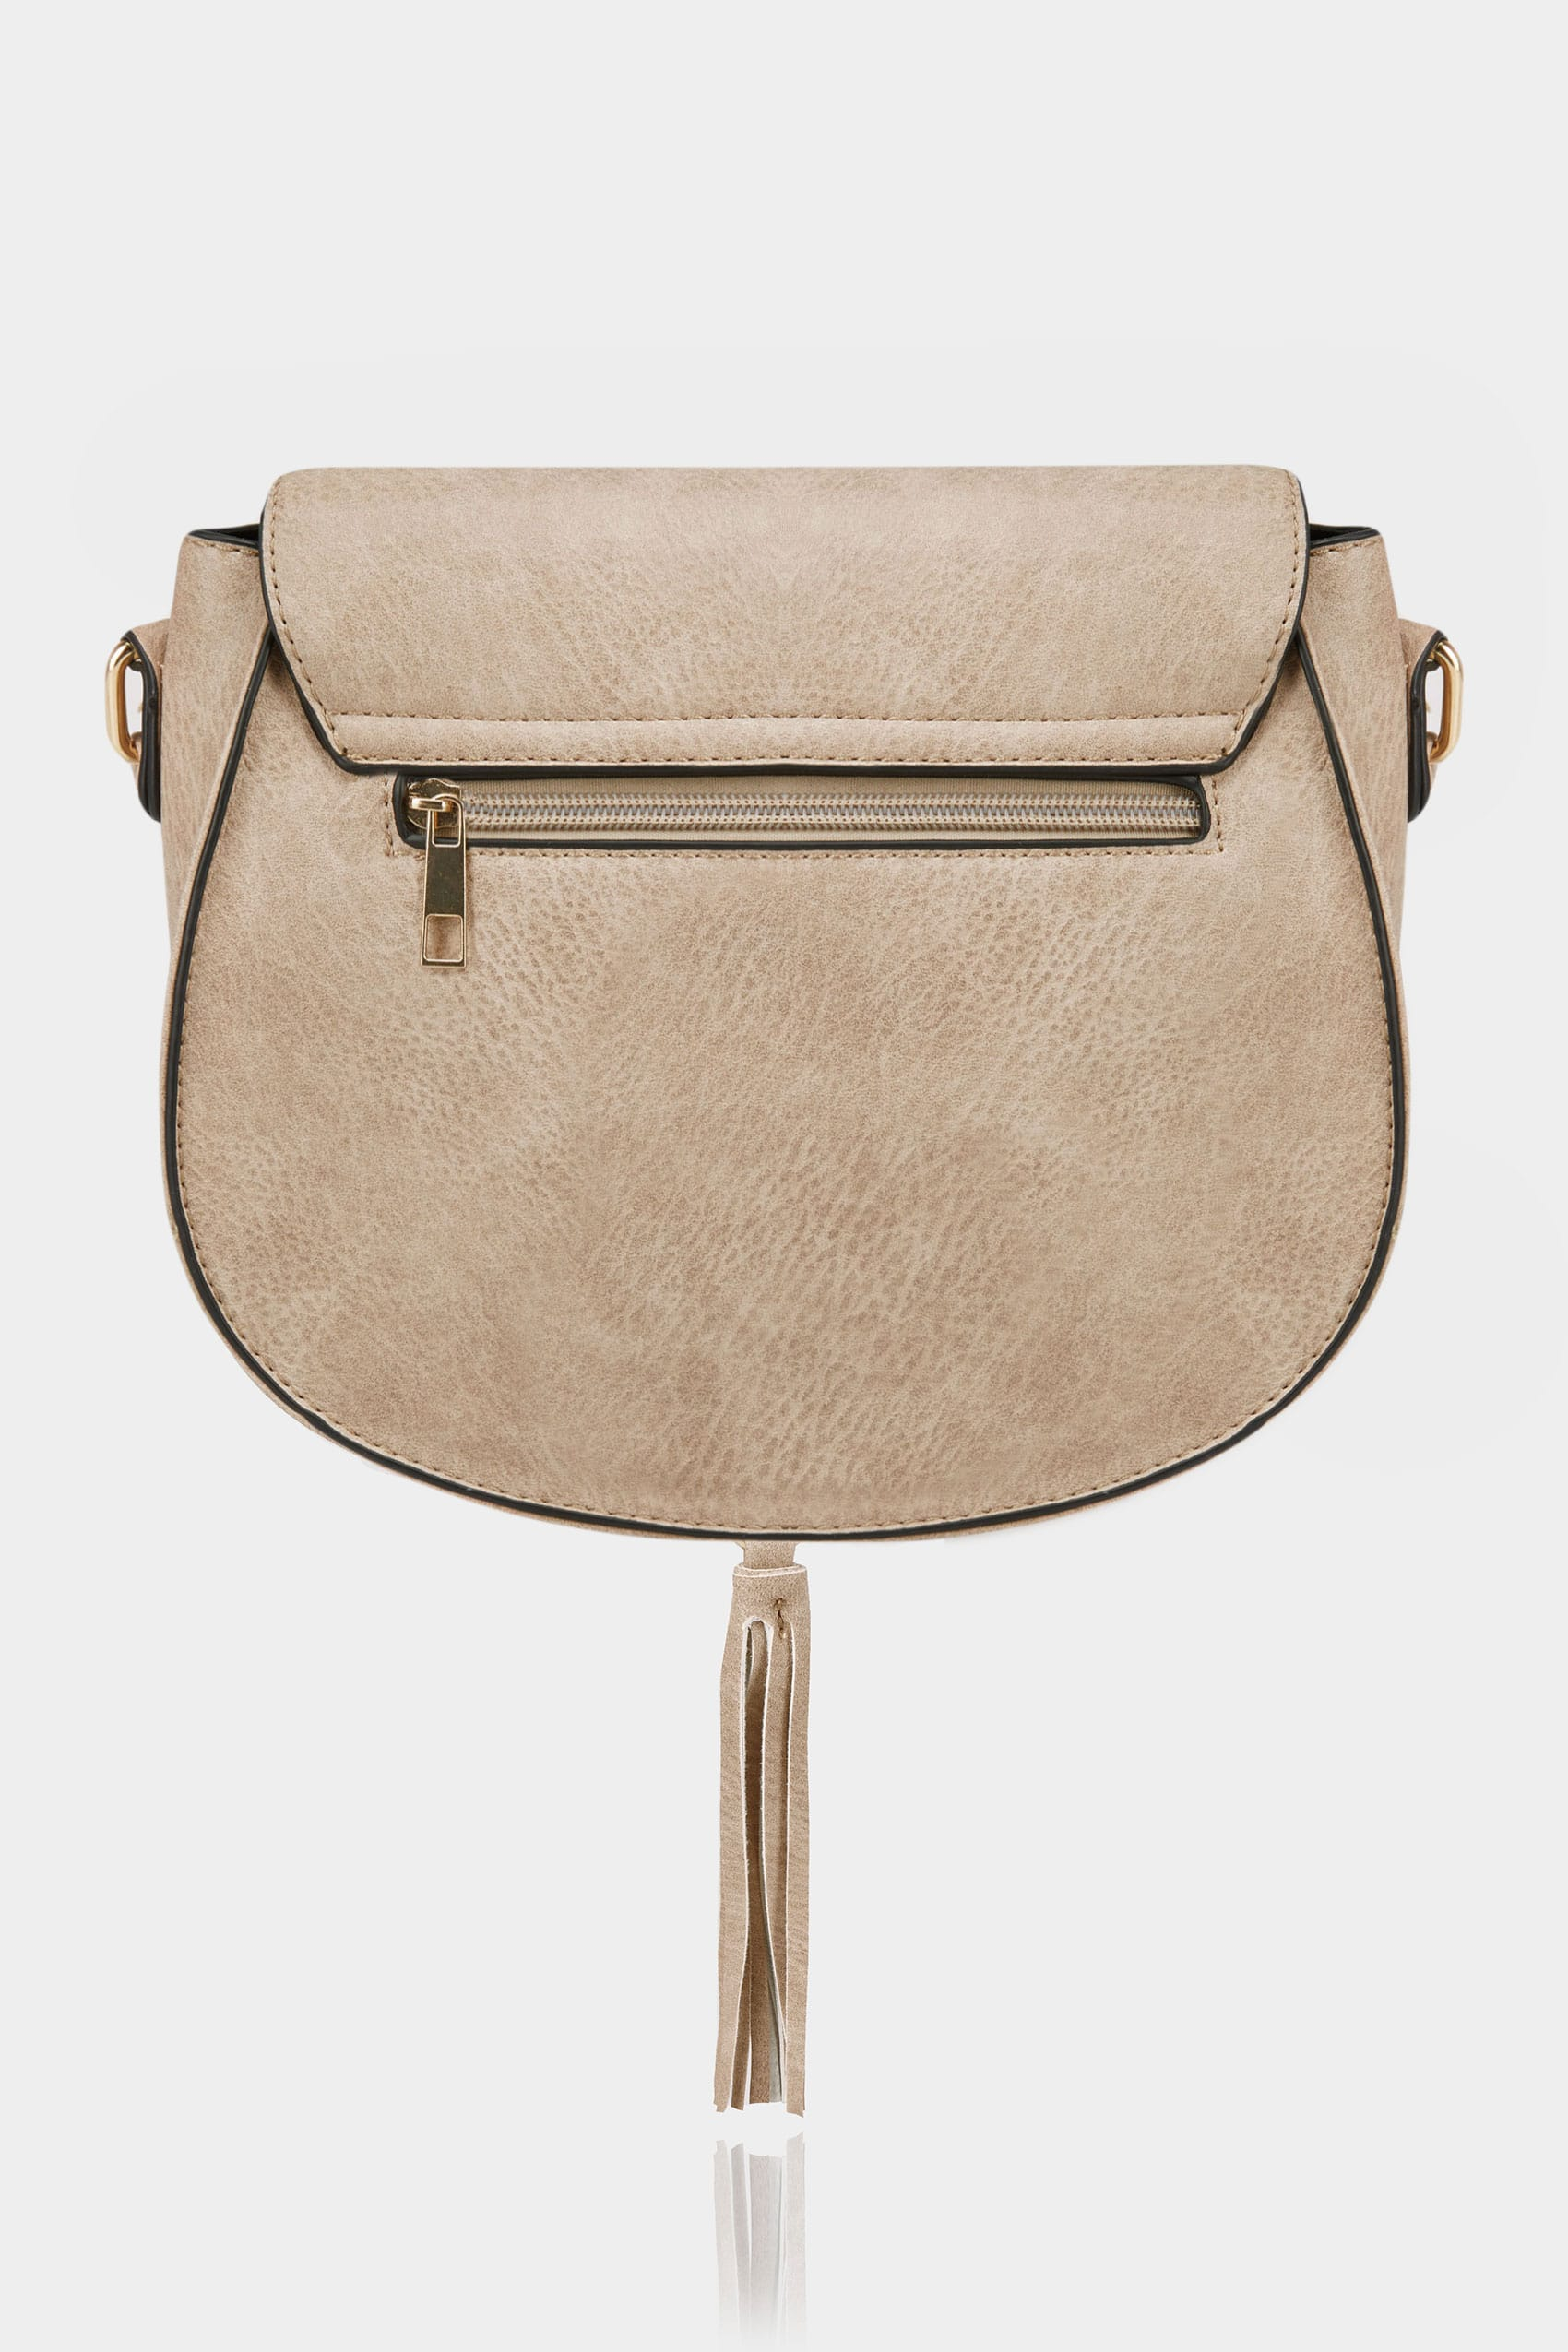 natural beige stitched cross body saddle bag. Black Bedroom Furniture Sets. Home Design Ideas